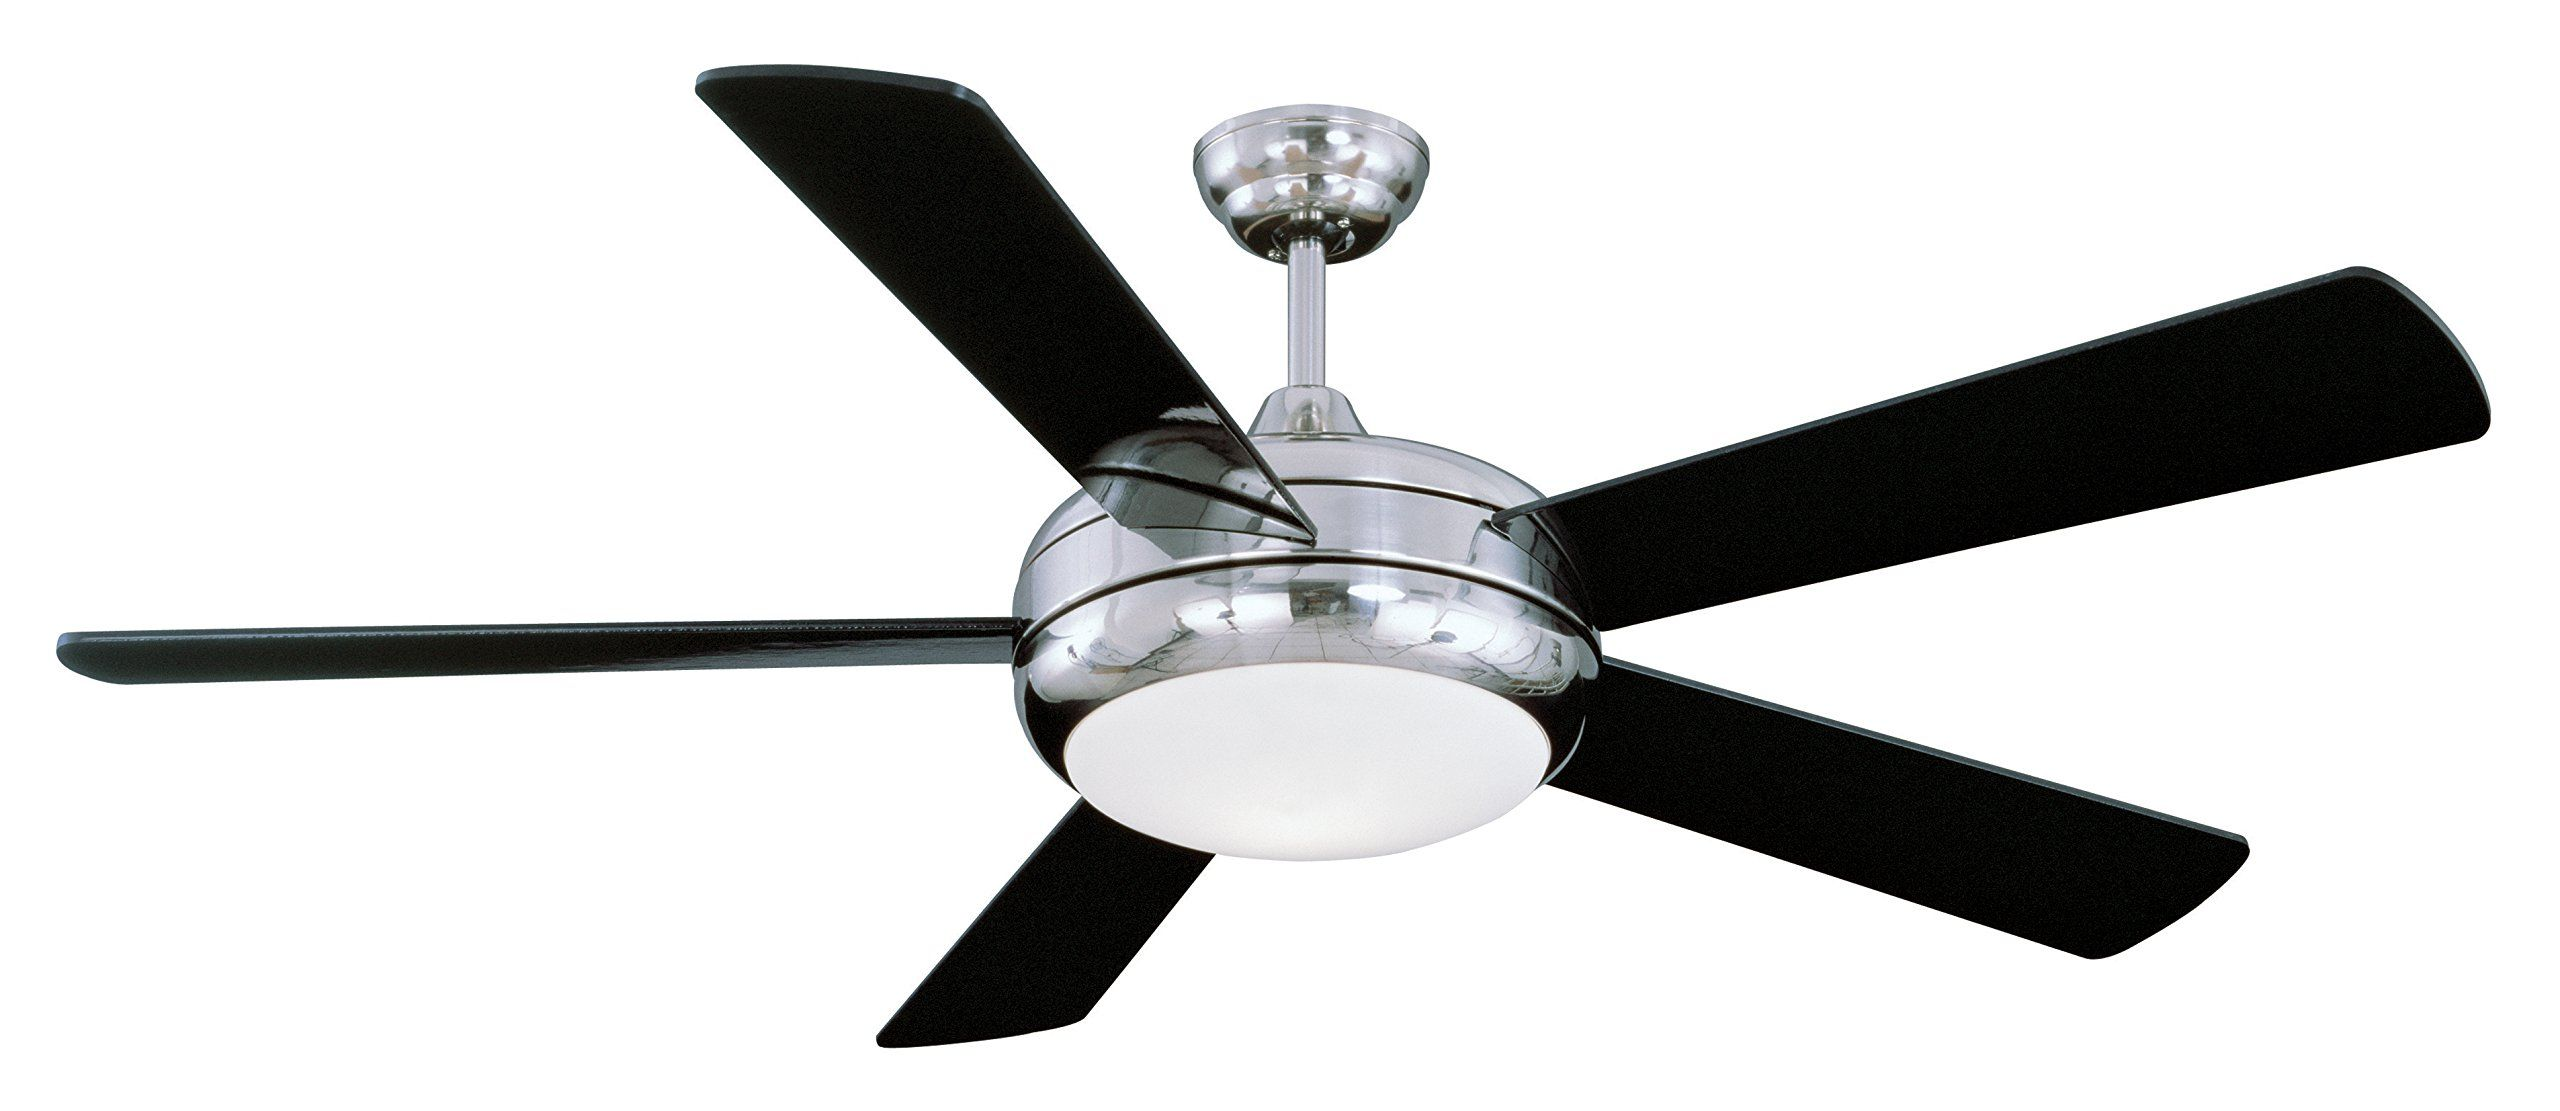 Litex etitschlkrc titan collection inch ceiling fan with